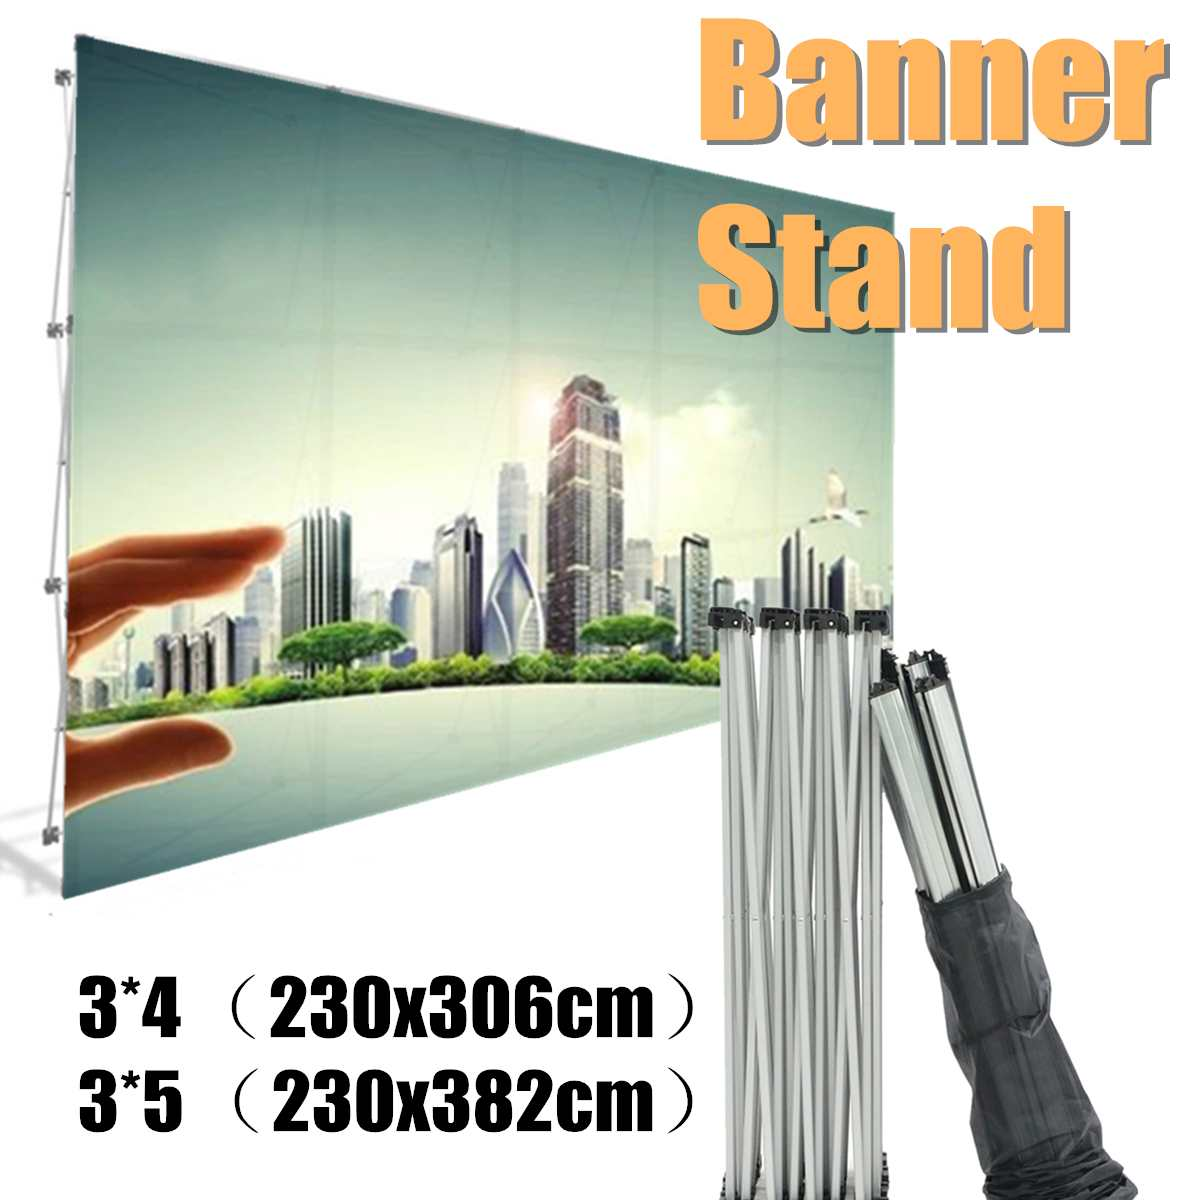 2 Size Poster Retractable Backdrop Display Stand Tradeshow Wall Media Portable Wedding Tension Fabric Banner Exhibition Booth2 Size Poster Retractable Backdrop Display Stand Tradeshow Wall Media Portable Wedding Tension Fabric Banner Exhibition Booth